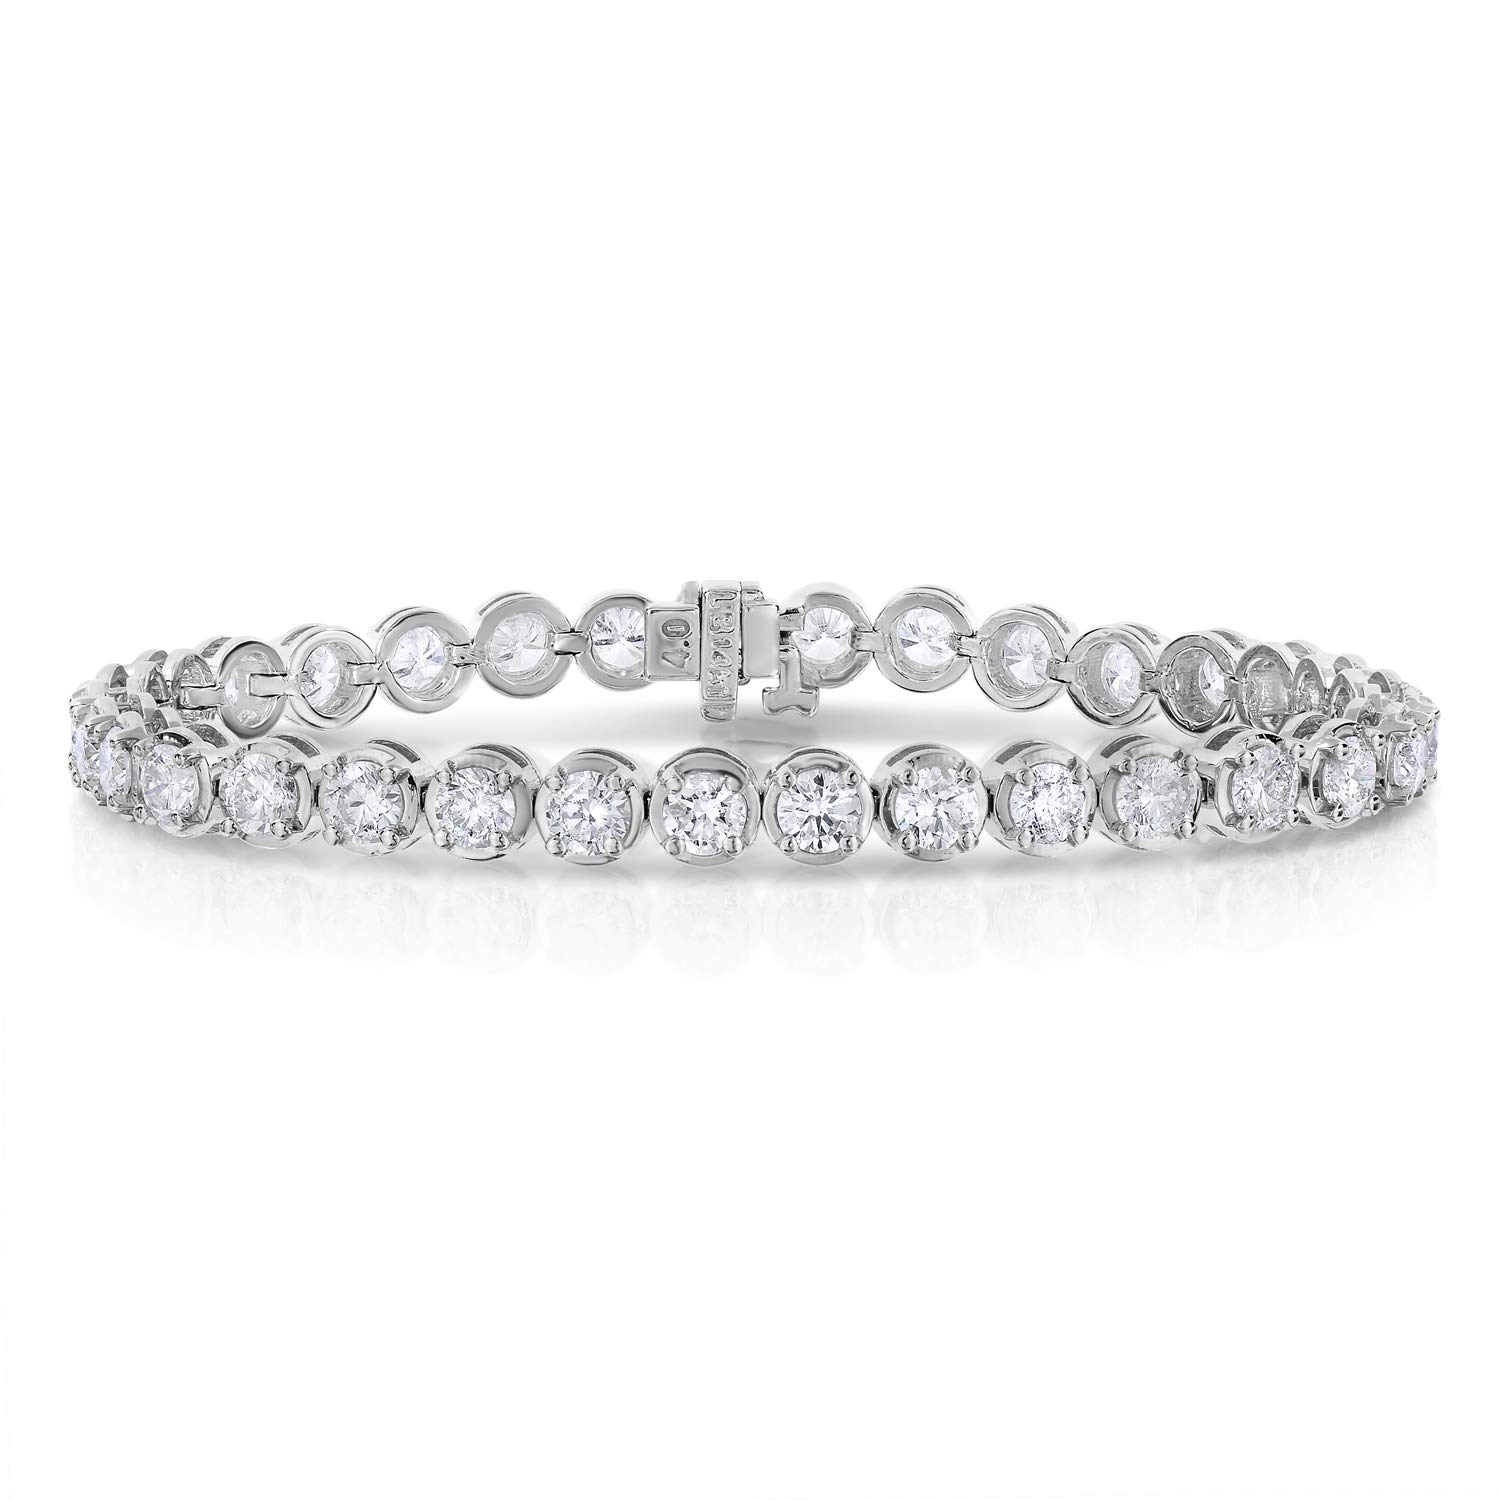 8 cttw Certified Classic Tennis Diamond Bracelet 14K White Gold SI2-I1 Clarity I-J Color by Vir Jewels